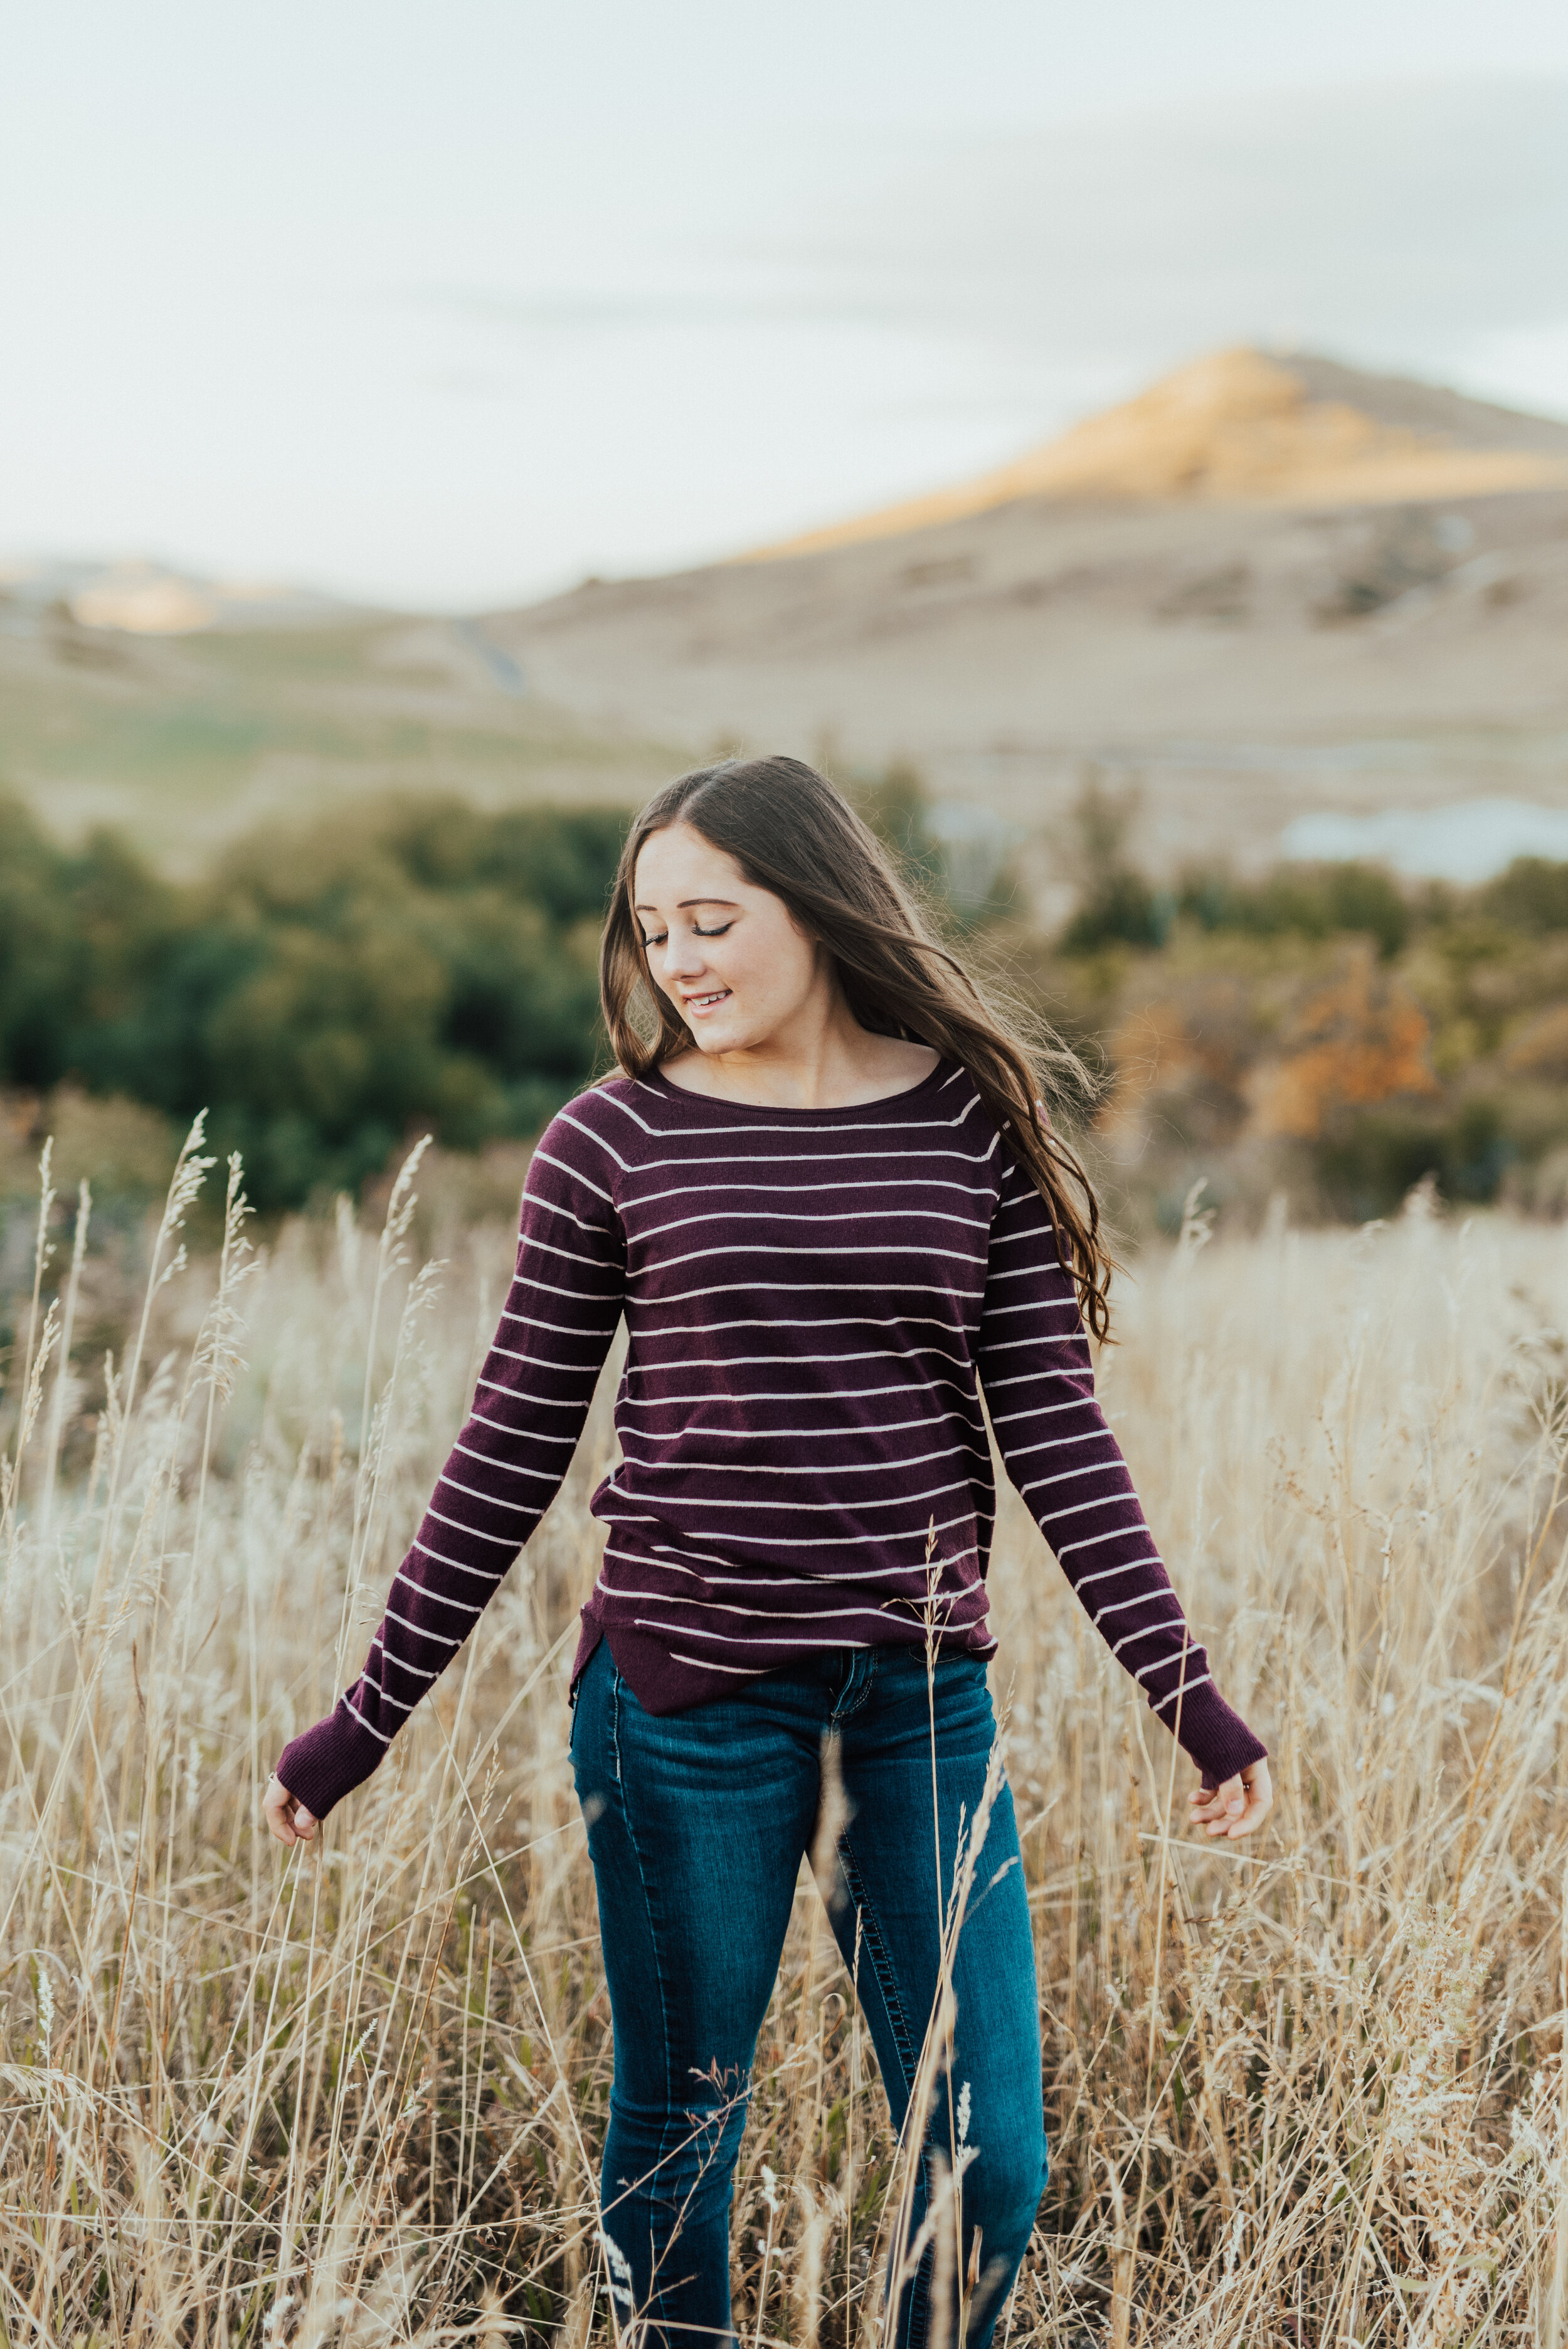 Teen girl in jeans and a burgundy striped sweater standing in a beautiful field. cache valley senior photo poses logan utah photographers teen fashion senior pictures photo session outfit inspiration casual senior picture outfits senior in high school graduating class of 2020 professional photographers in utah #kristialysephotography #professionalphotographersinutah #utahphotographers #seniorportraits #cachevalley #loganutah #casualseniorpictureoutfits #teenfashion #senior #classof2020